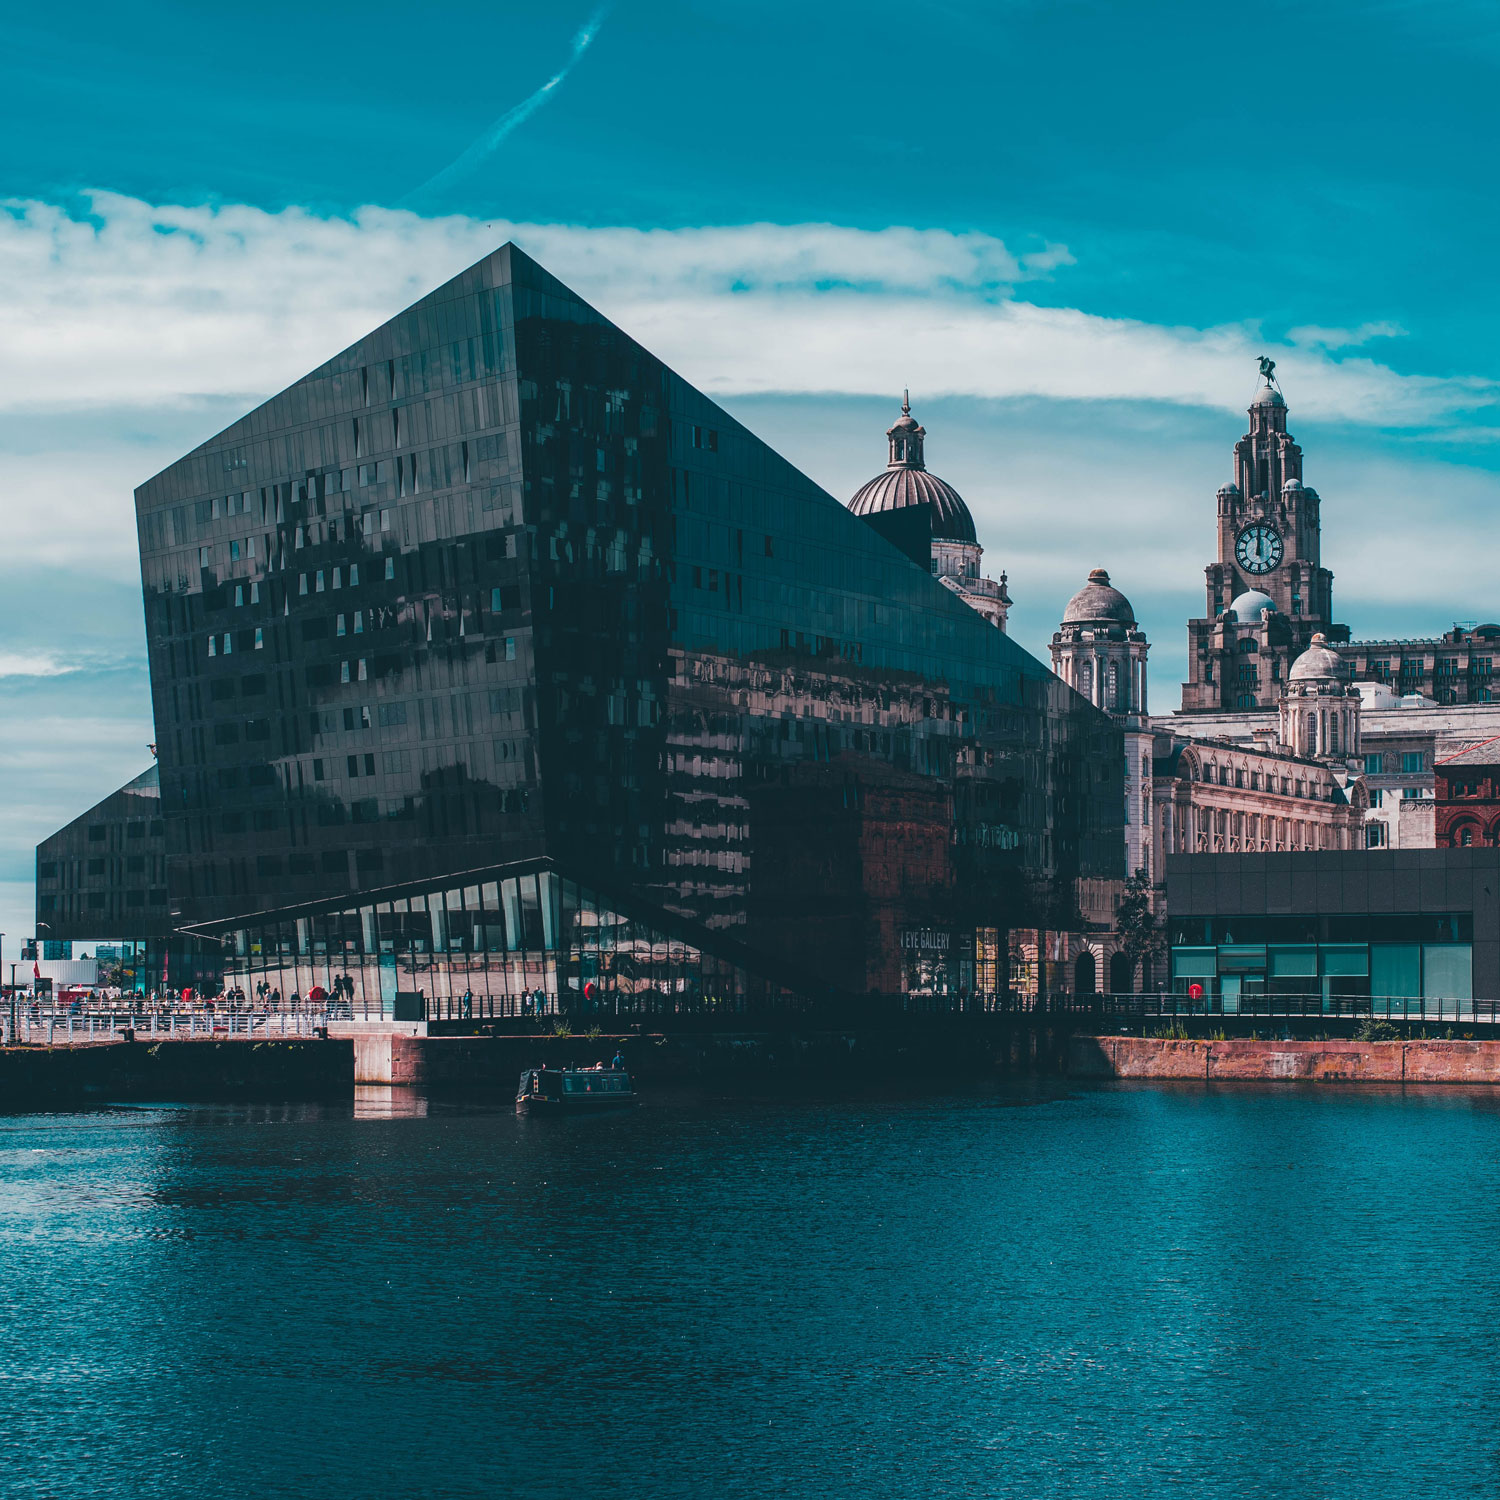 The Bi'an Liverpool City Guide